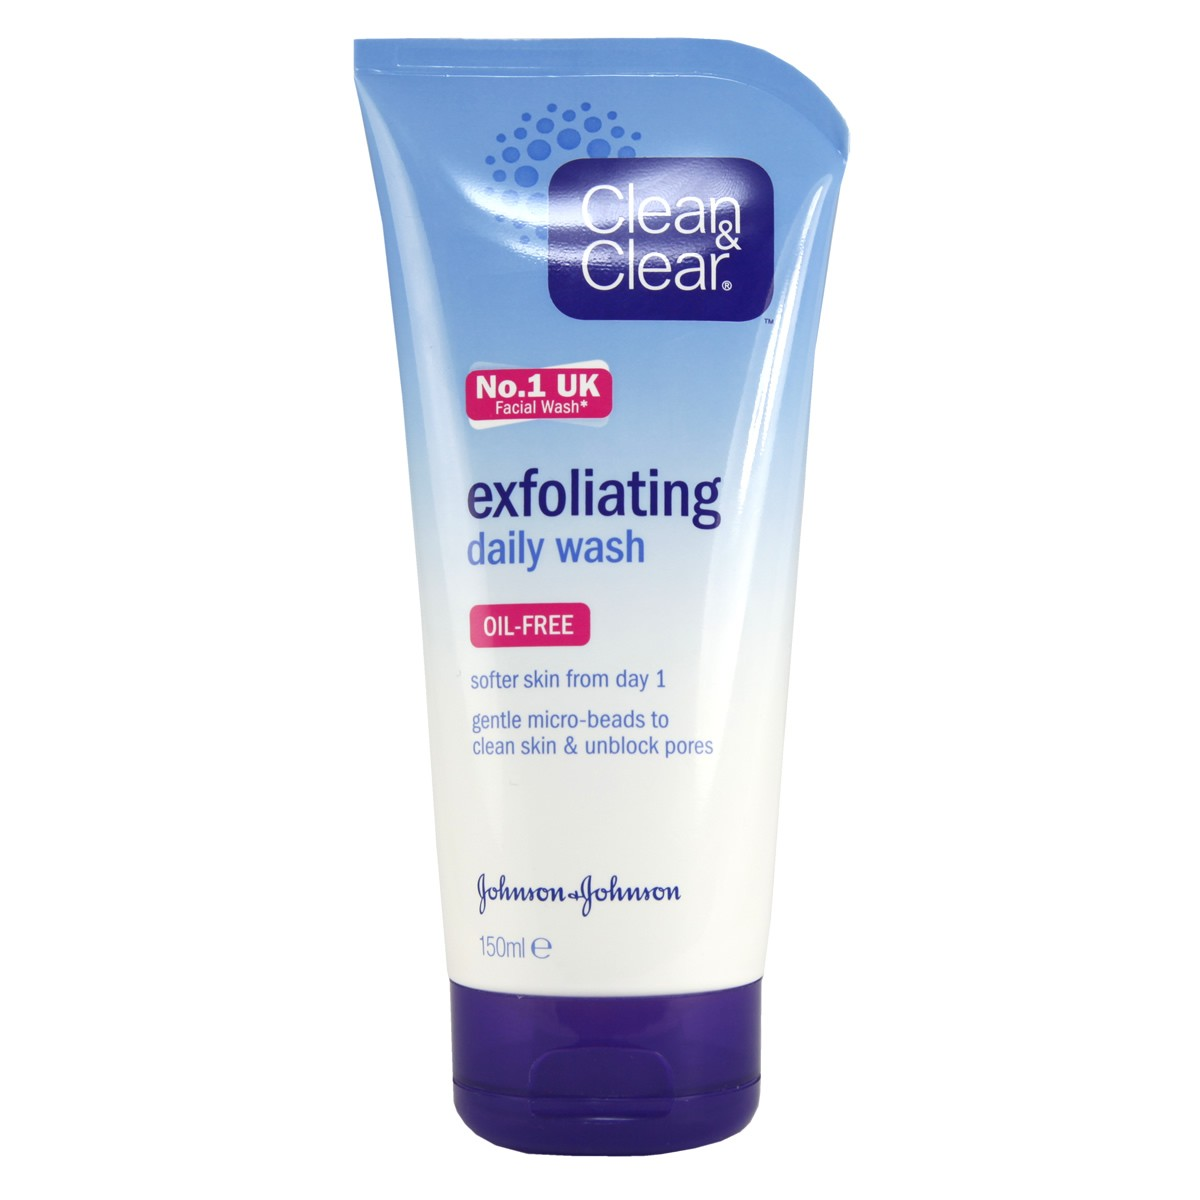 Clean & Clear Exfoliating Daily Wash - Oil Free